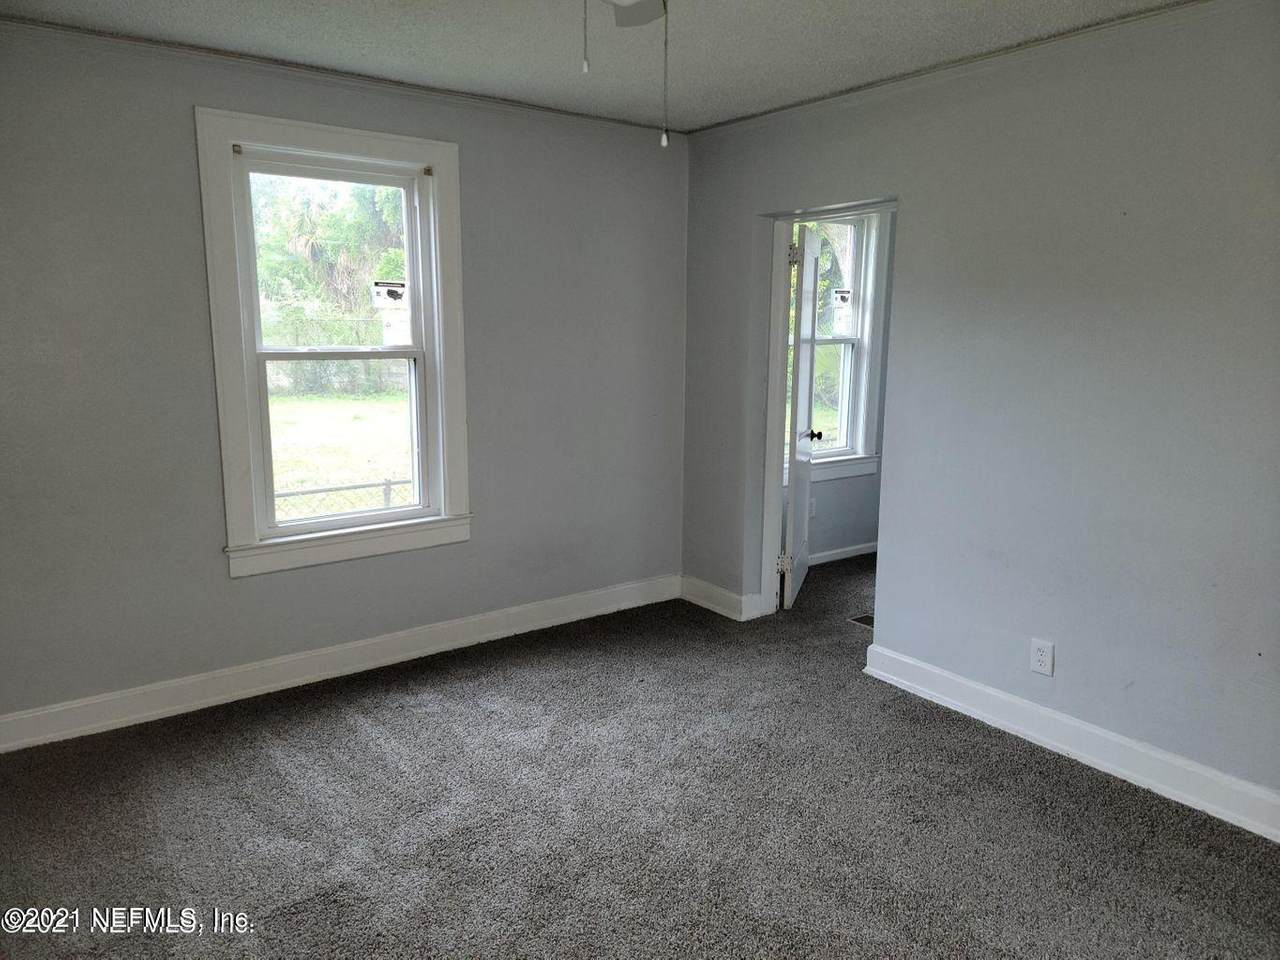 29 18TH St - Photo 1